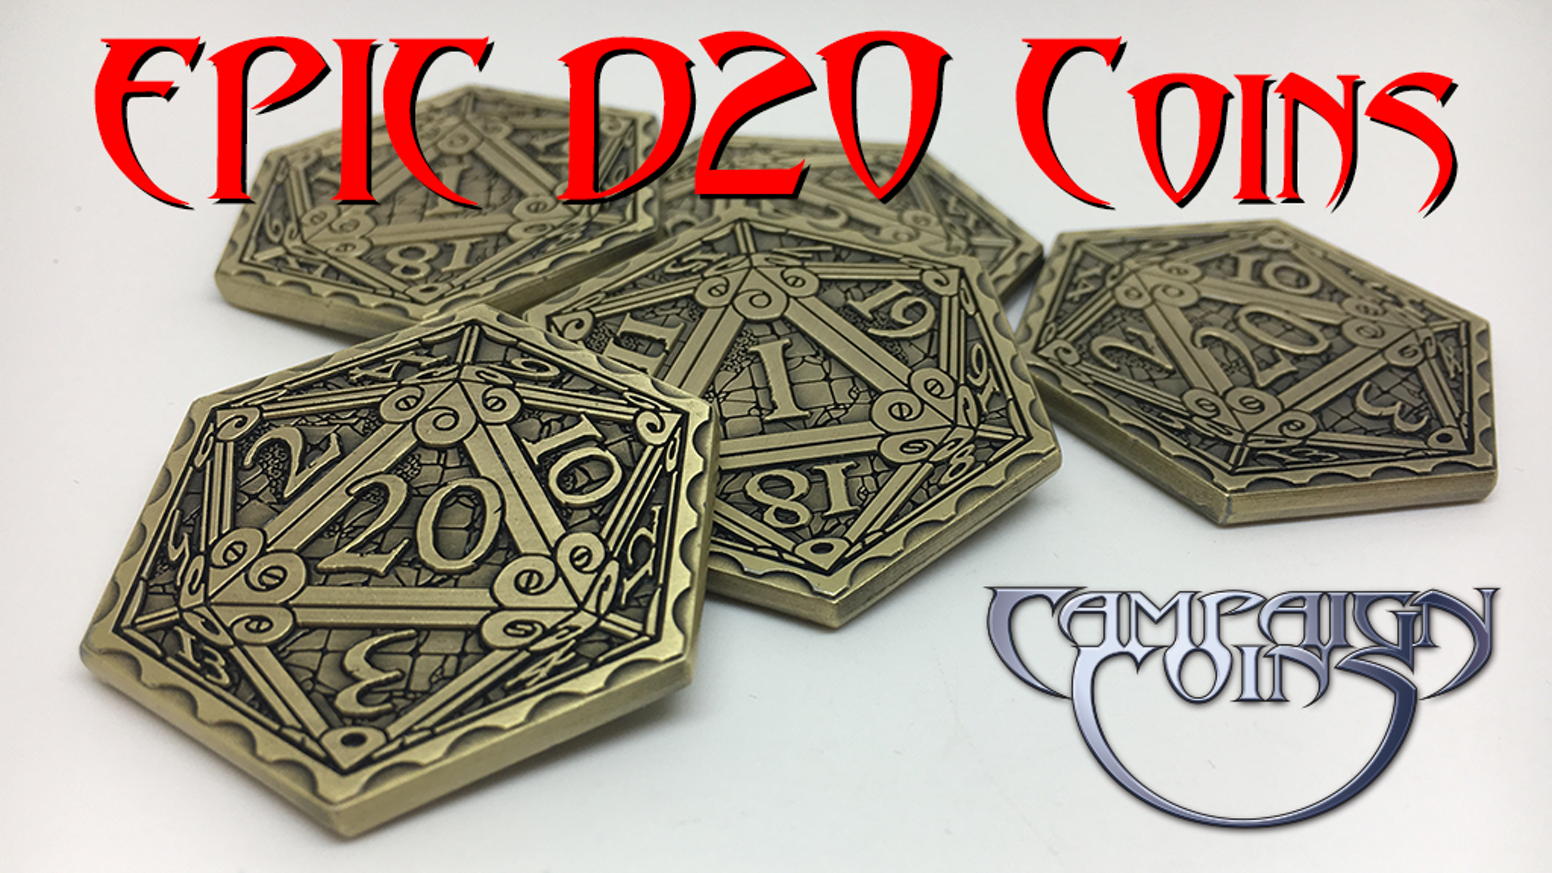 Stunning metal D20 coins with serious heft. For adventurers everywhere.